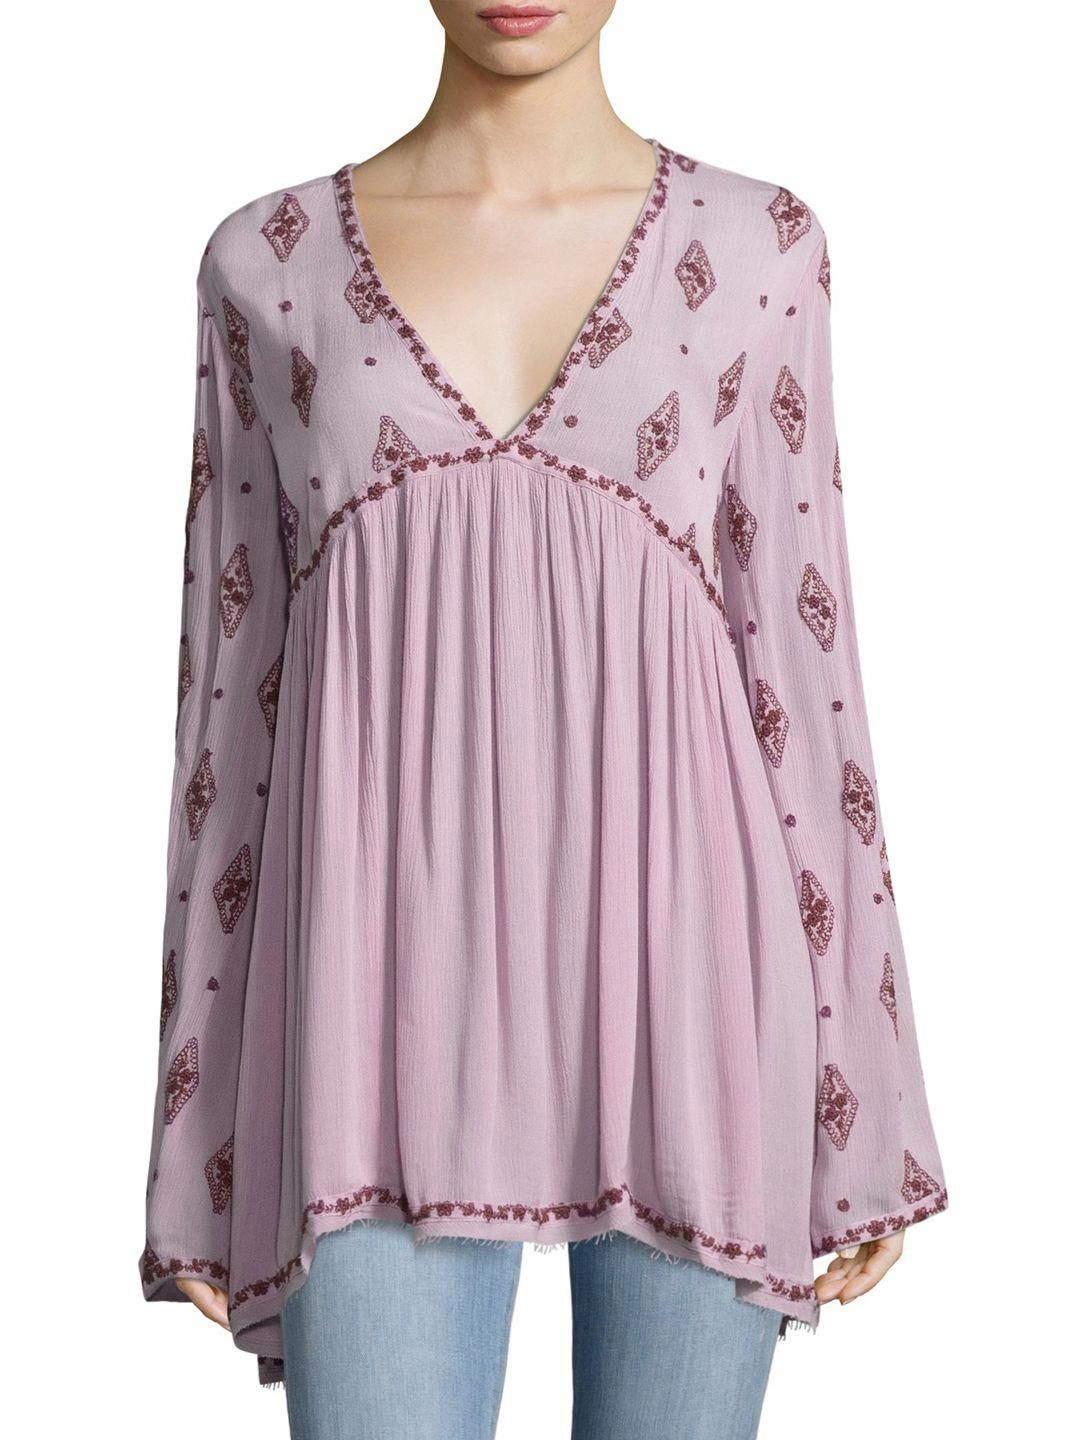 FREE PEOPLE DIAMOND EMBROIDERY BLOUSE freepeople cloth